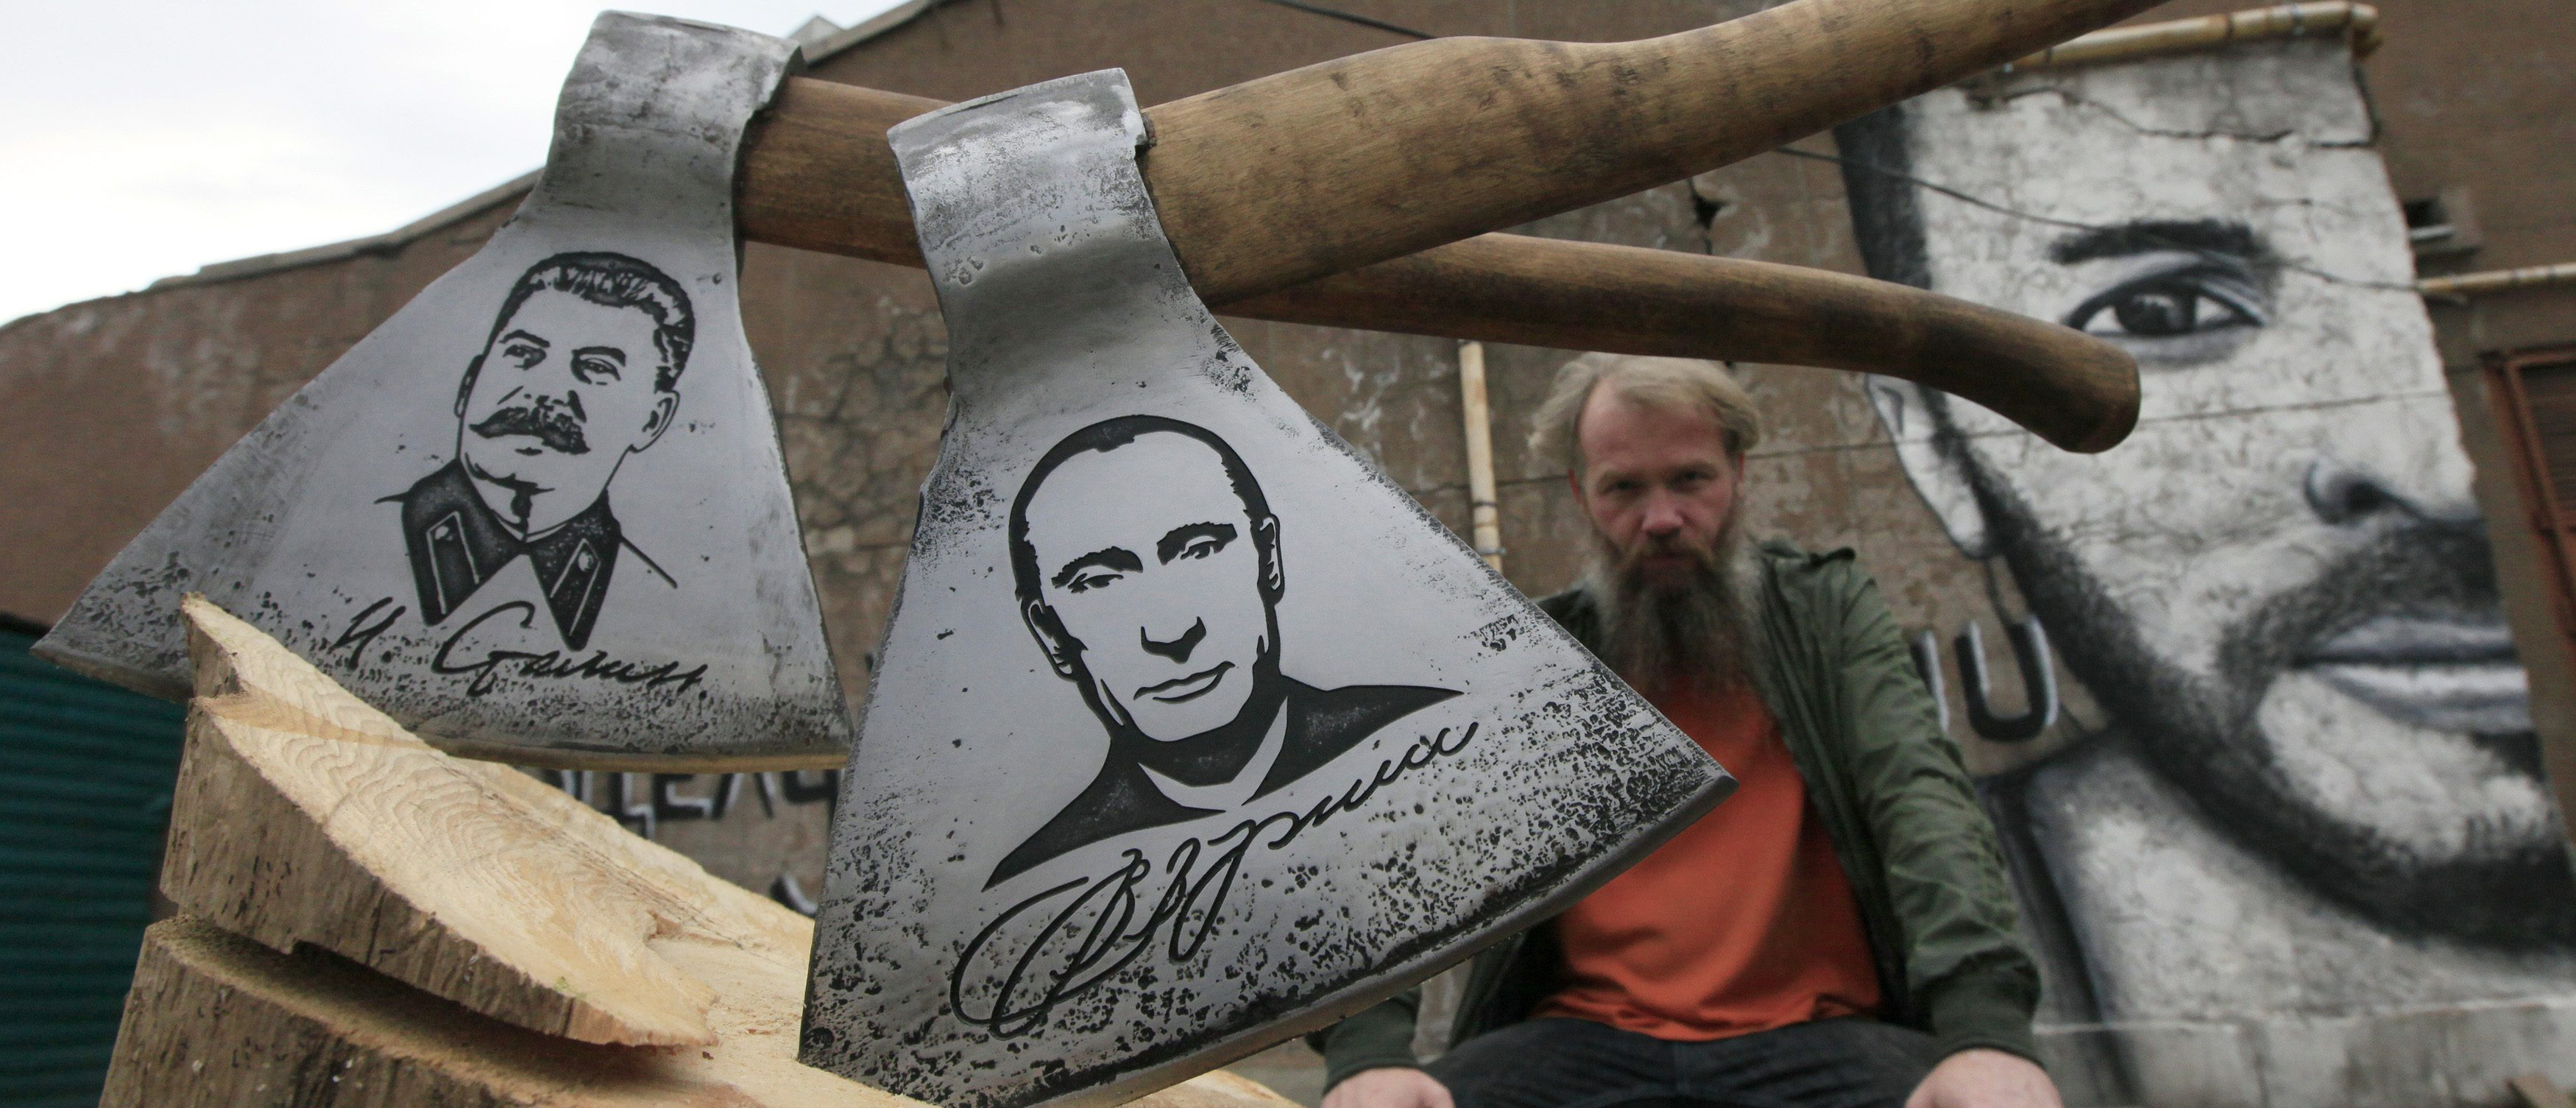 """Russian artist Vasily Slonov poses for a picture with axes engraved with portraits of Russian President Vladimir Putin and Soviet leader Josef Stalin, during a presentation of his new art project """"History of Russia, 20th century - from Lenin to Putin"""" at the courtyard of the Museum Center in Russia's Siberian city of Krasnoyarsk September 2, 2013. The artist has chemically engraved portraits of nine Soviet and Russian political figures on a series of butchers' axes.  REUTERS/Ilya Naymushin"""